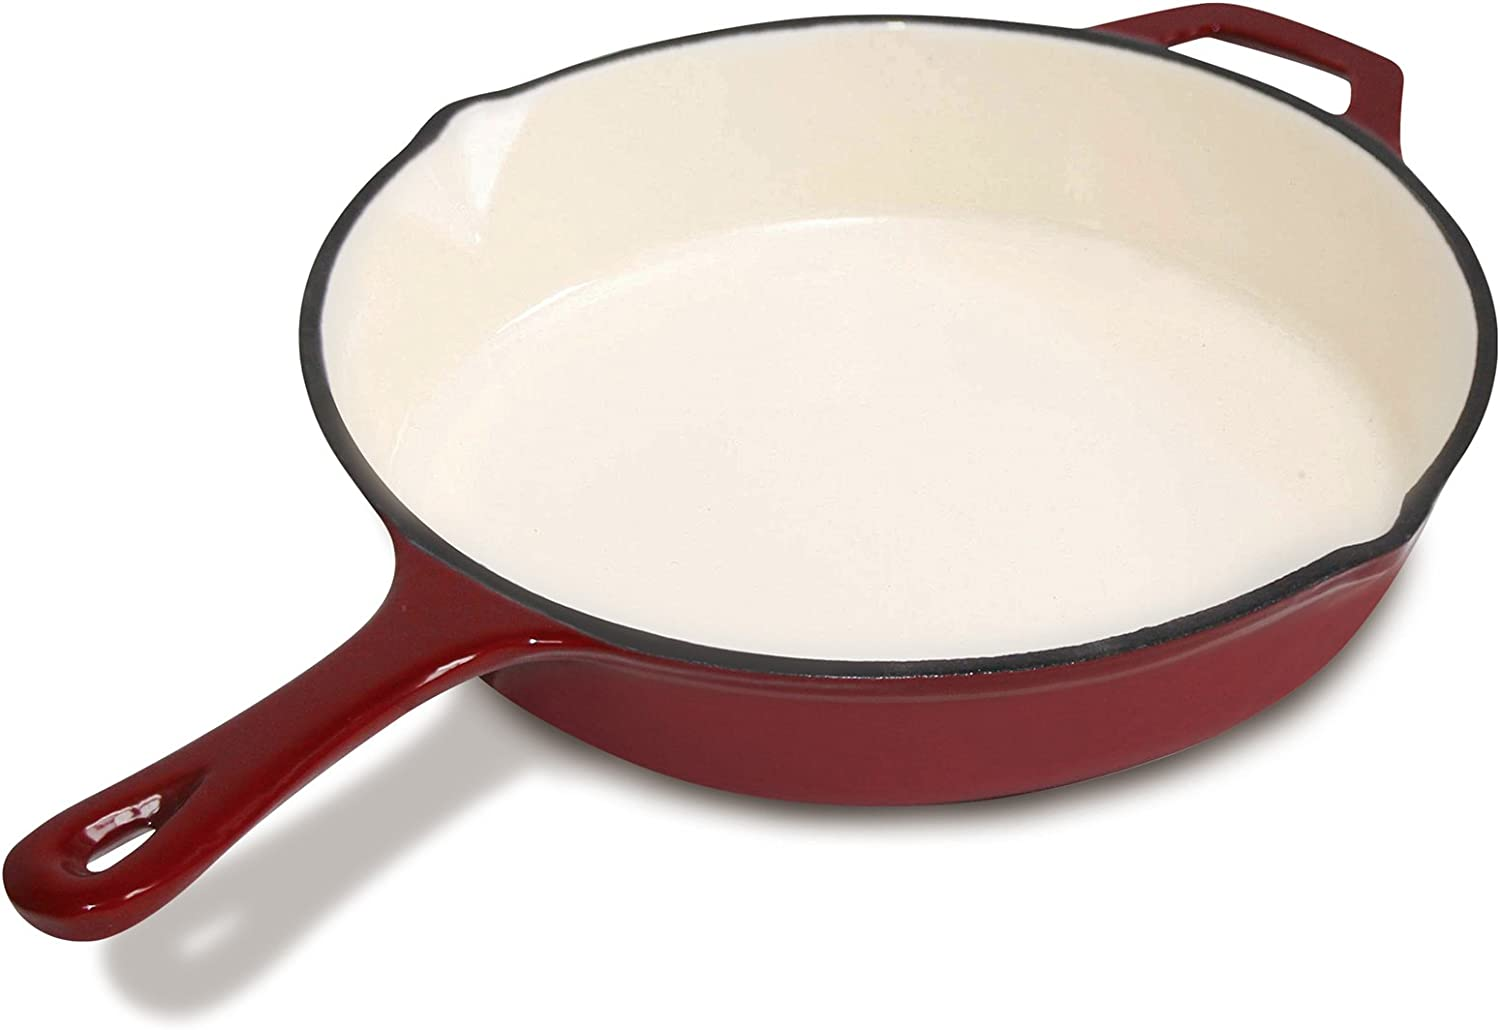 """ChefVentions Oven to Table Cookware (10"""" Frying Pan)"""